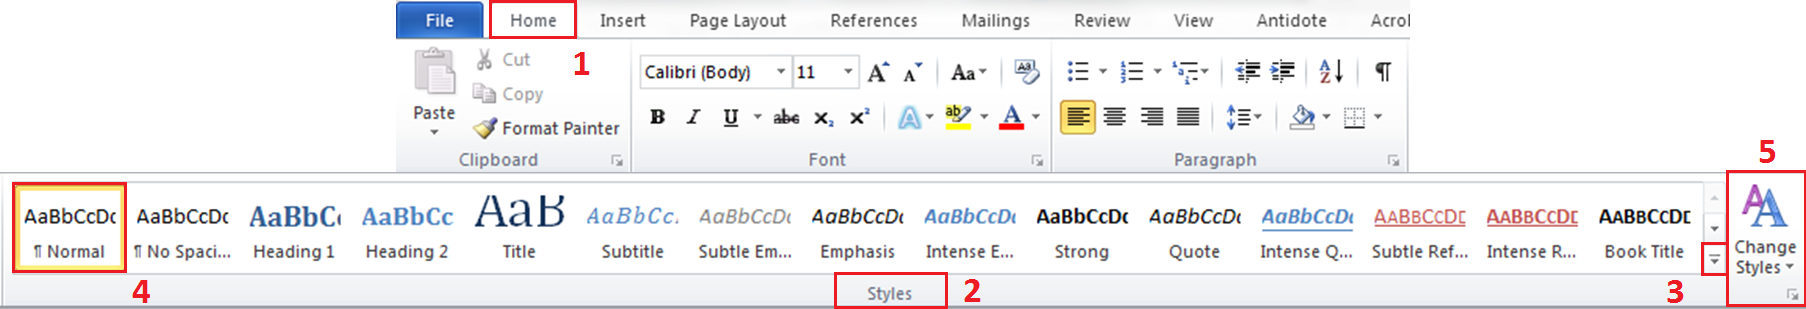 Home tab Styles group